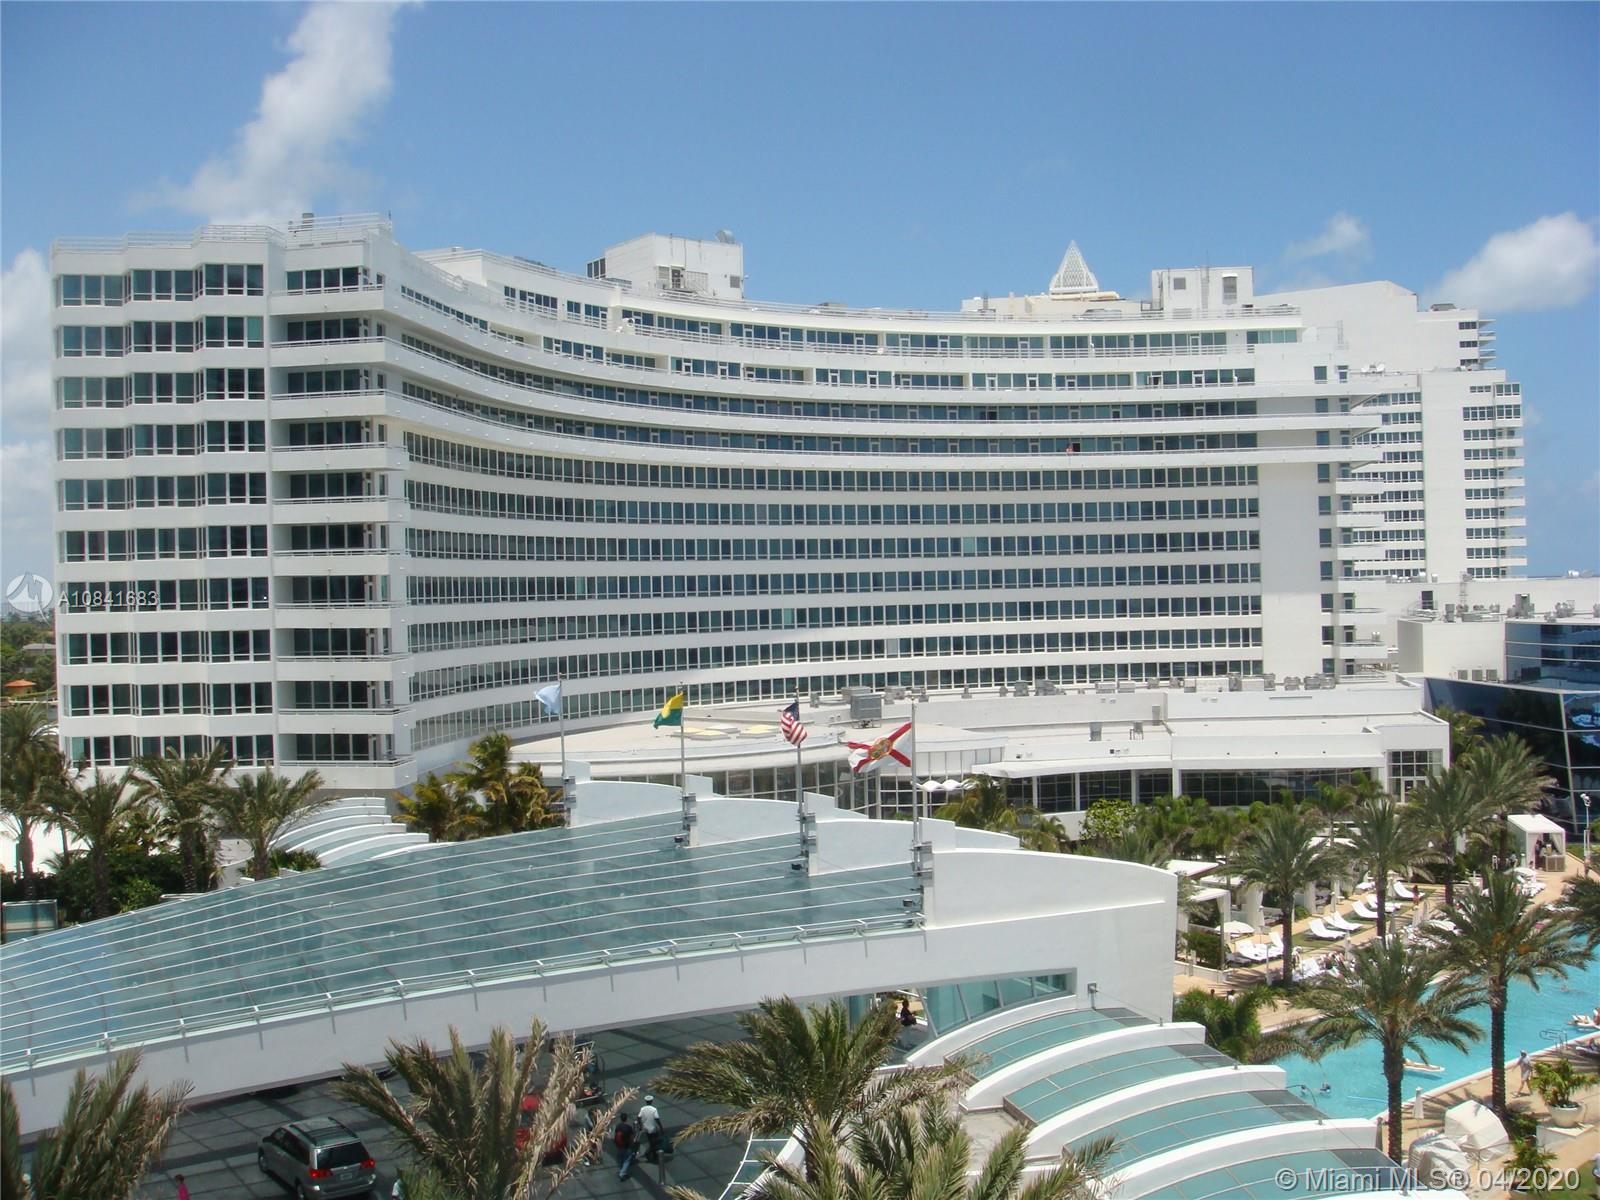 STRAIGHT, STRAIGHT, STRAIGHT OCEAN VIEW ** WONDERFUL OCEAN VIEW ** BEAUTYFUL FURNISHED SUITE IN THE WORLDCLASS >FONTAINEBLEAU< HOTEL III ** THERE IS A FULL HOTEL SERVICE ** THE UNIT COME TURNKEY IN 5 STAR SERVICE ** THE UNIT IS COMPLETELY REDONE 2019 ** MONEY MAKER (THE HOTEL RENT THE UNIT FOR YOU, WHEN YOU WANT) ** LIVE IN THIS DREAM RESORT AND ENJOY THE AMENITIES: 22 OCEANFRONT ACRES / LUXERY RESTAURANTS / -LIV- NIGHT-CLUB / LAPIS-SPA AND FITNESS CENTER / ELECTRIC, VALET PARKING, FREE DAILY BREAKFAST FOR OWNERS IS IN THE MAINTENANCE INCLUDED / 12 MINUTES TO MIAMI AIRPORT /